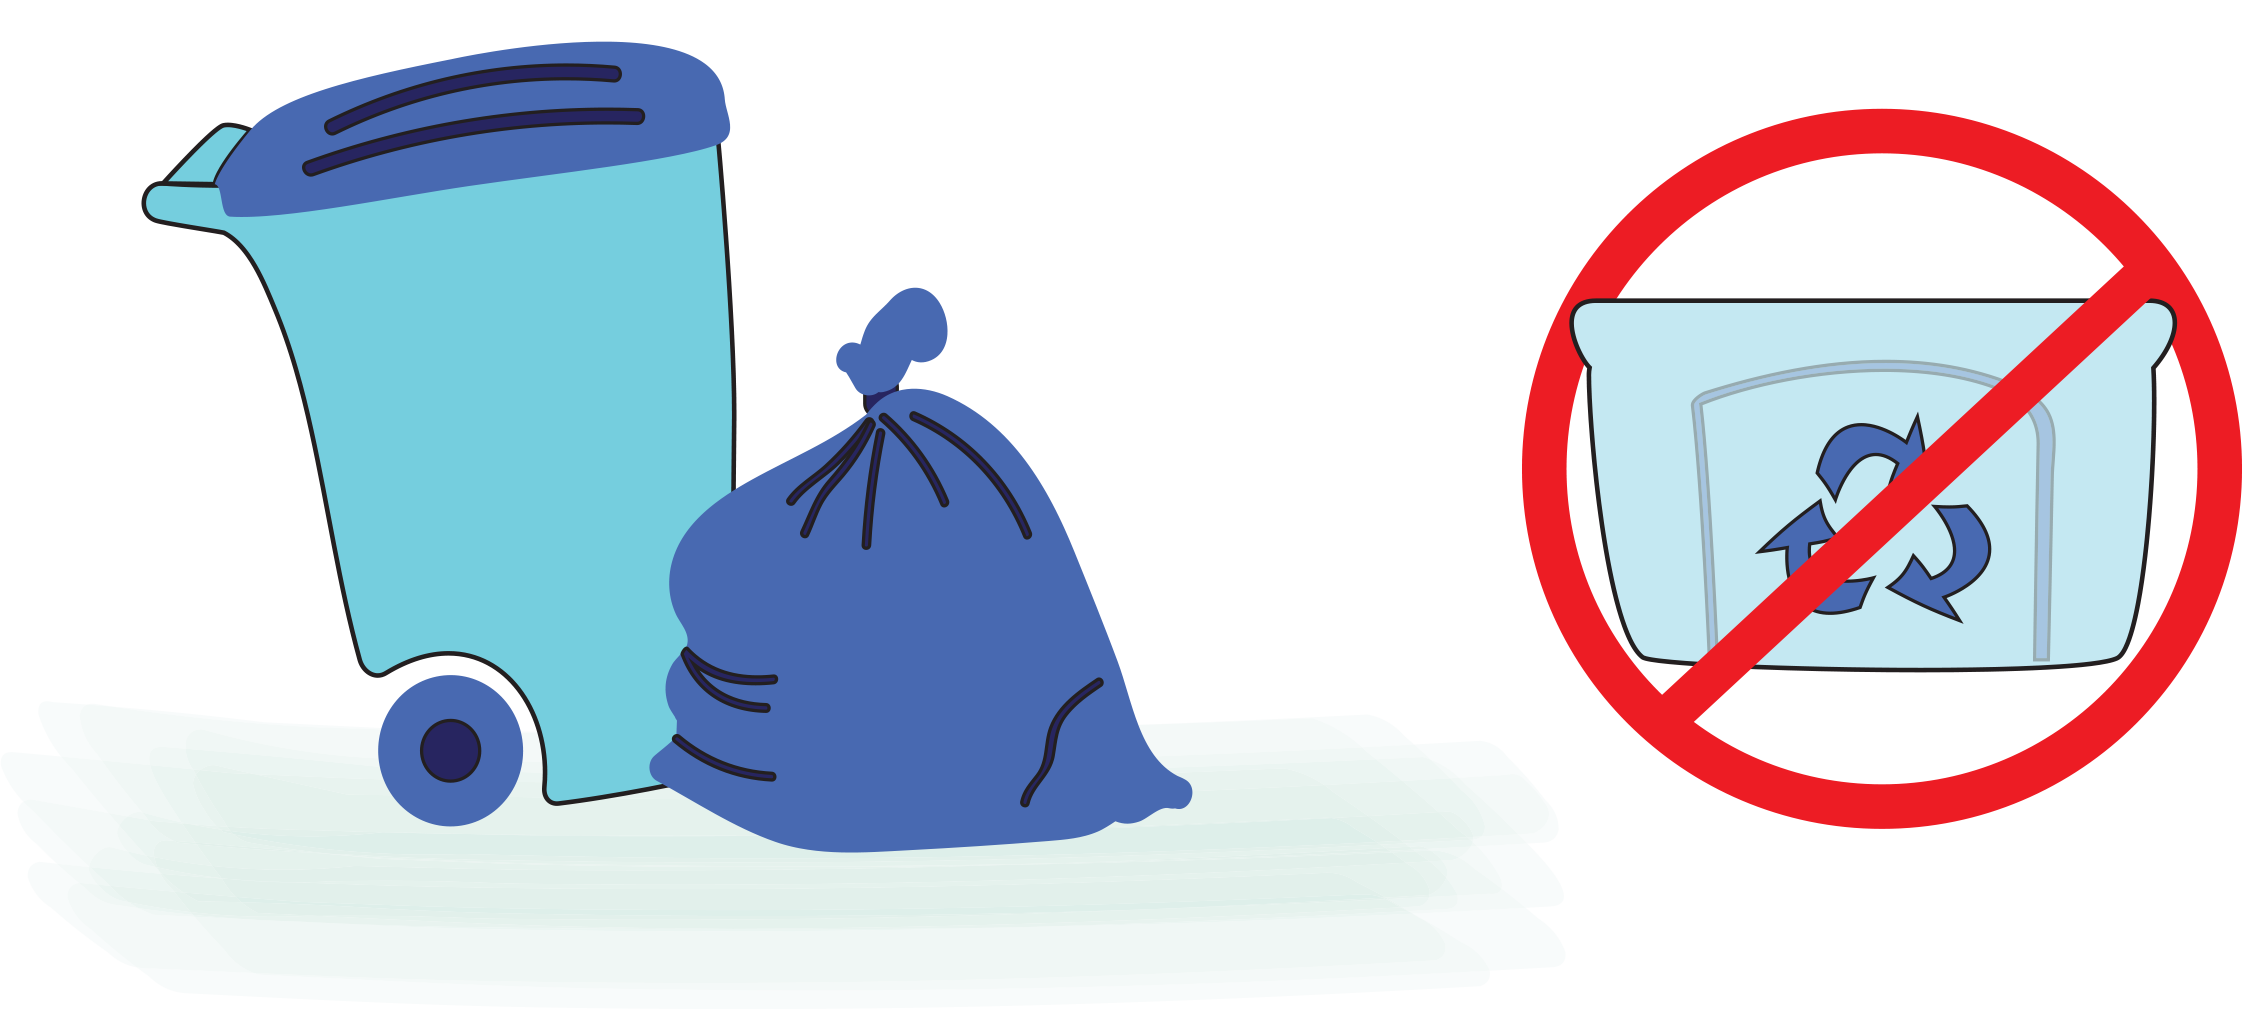 Garbage clipart household waste. State search safe needle